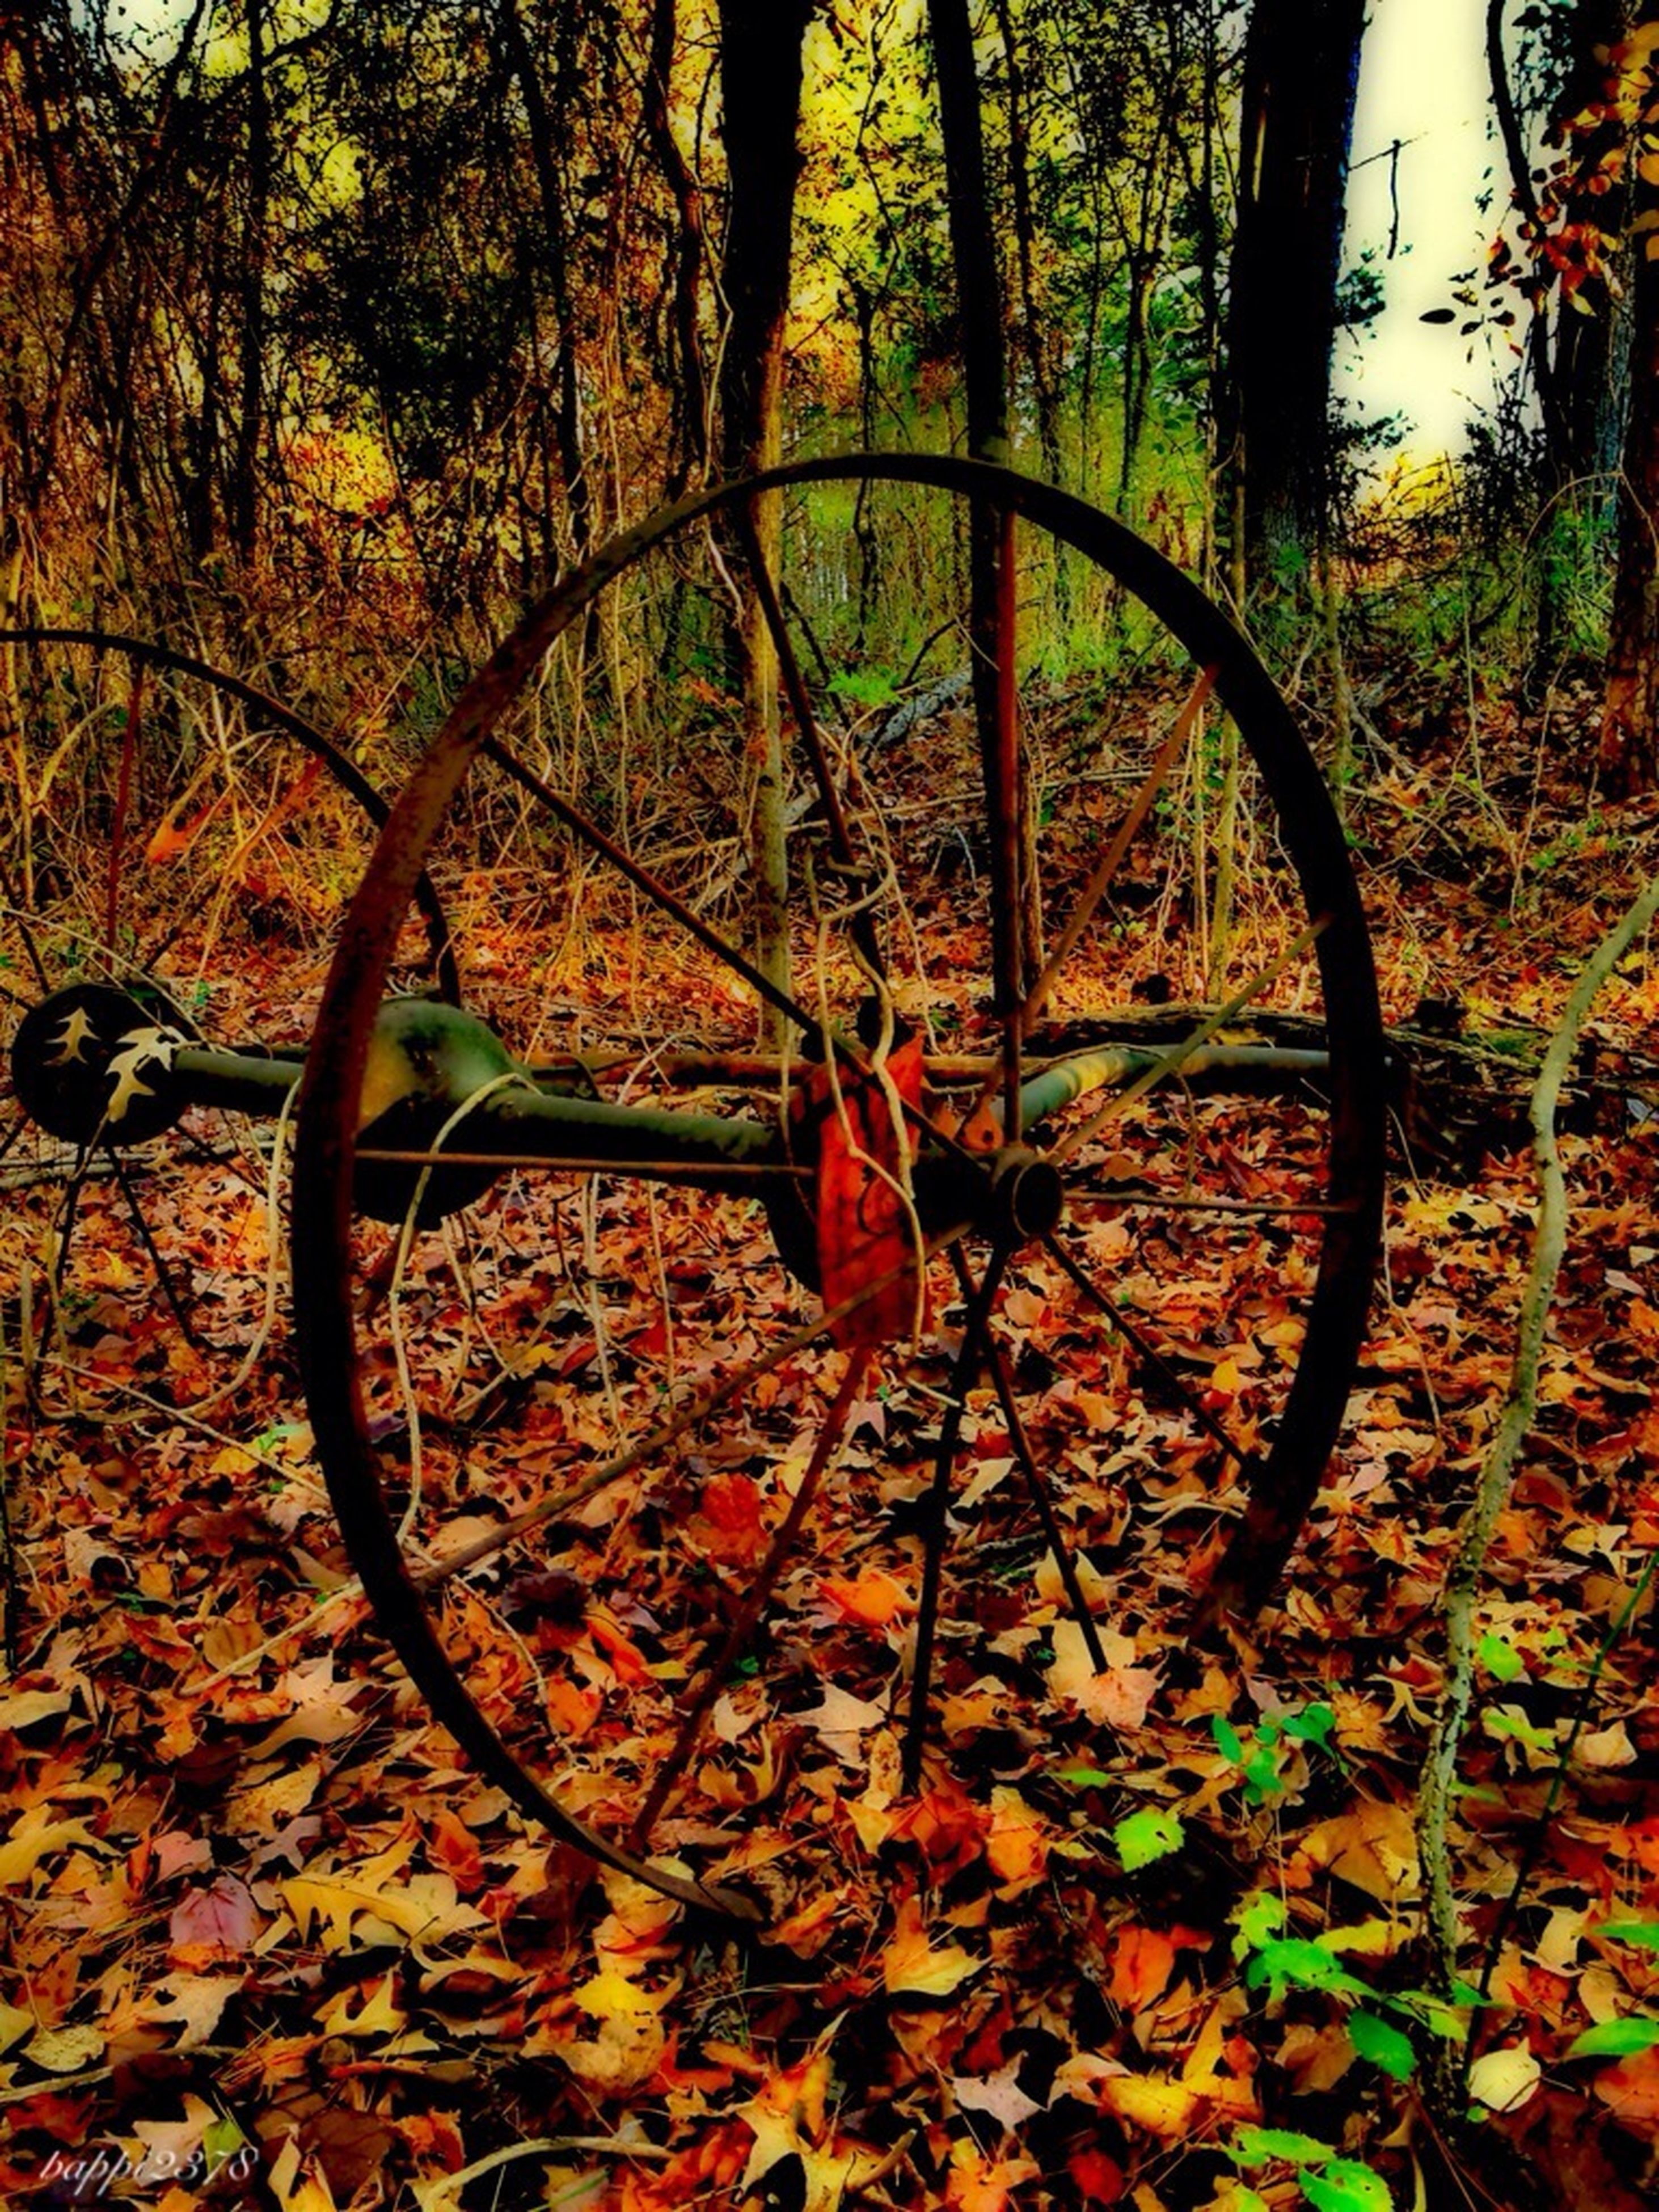 autumn, bicycle, tree, transportation, change, land vehicle, leaf, mode of transport, orange color, growth, season, plant, wheel, nature, tranquility, dry, fallen, day, stationary, outdoors